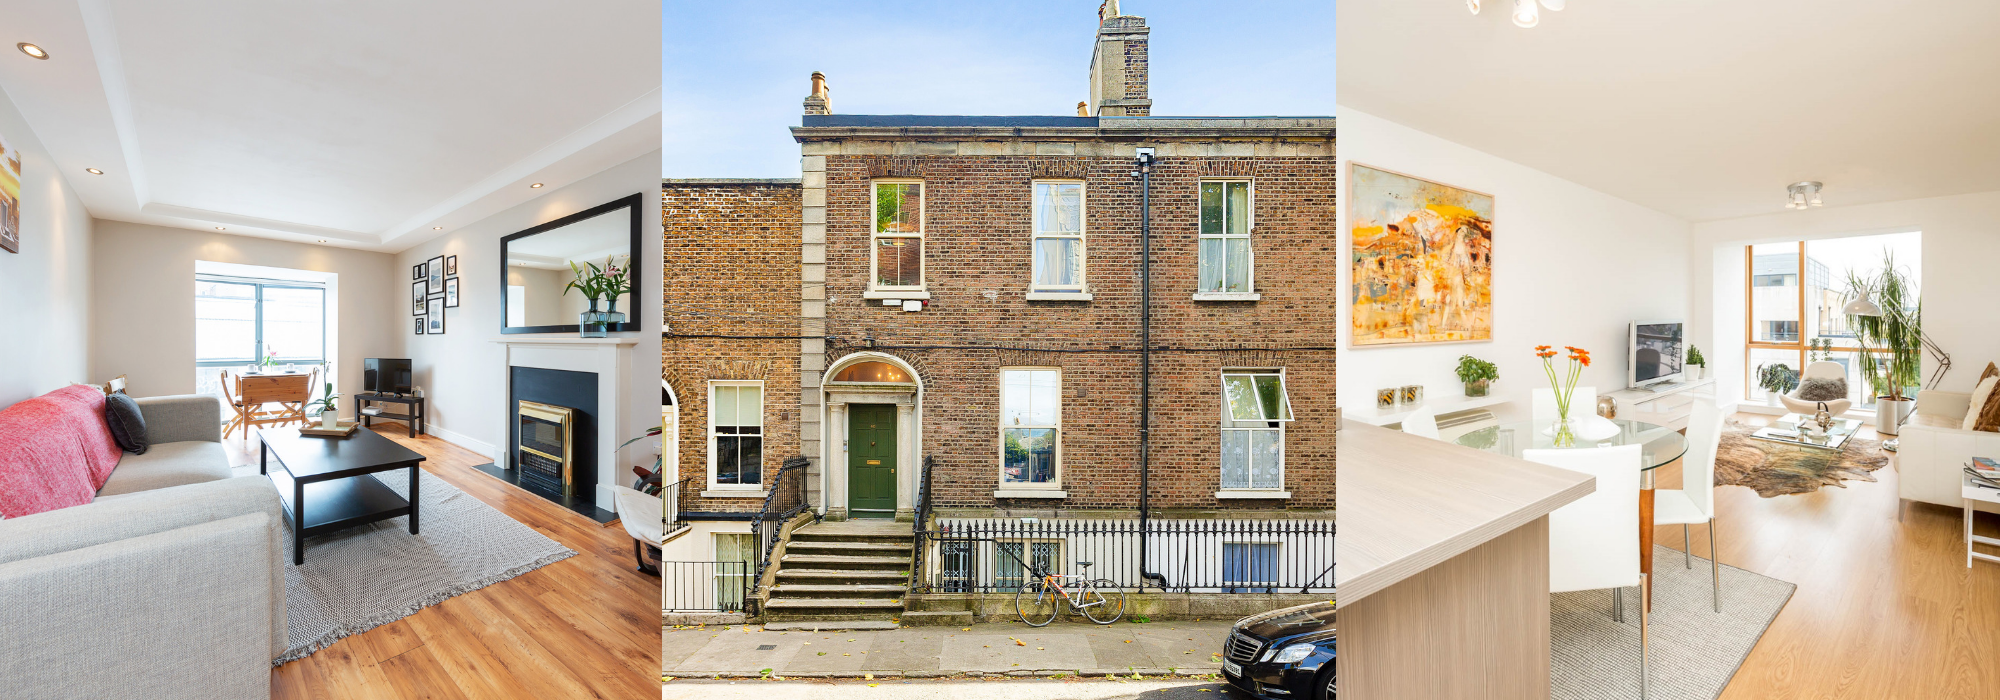 New to the market in Dublin 8